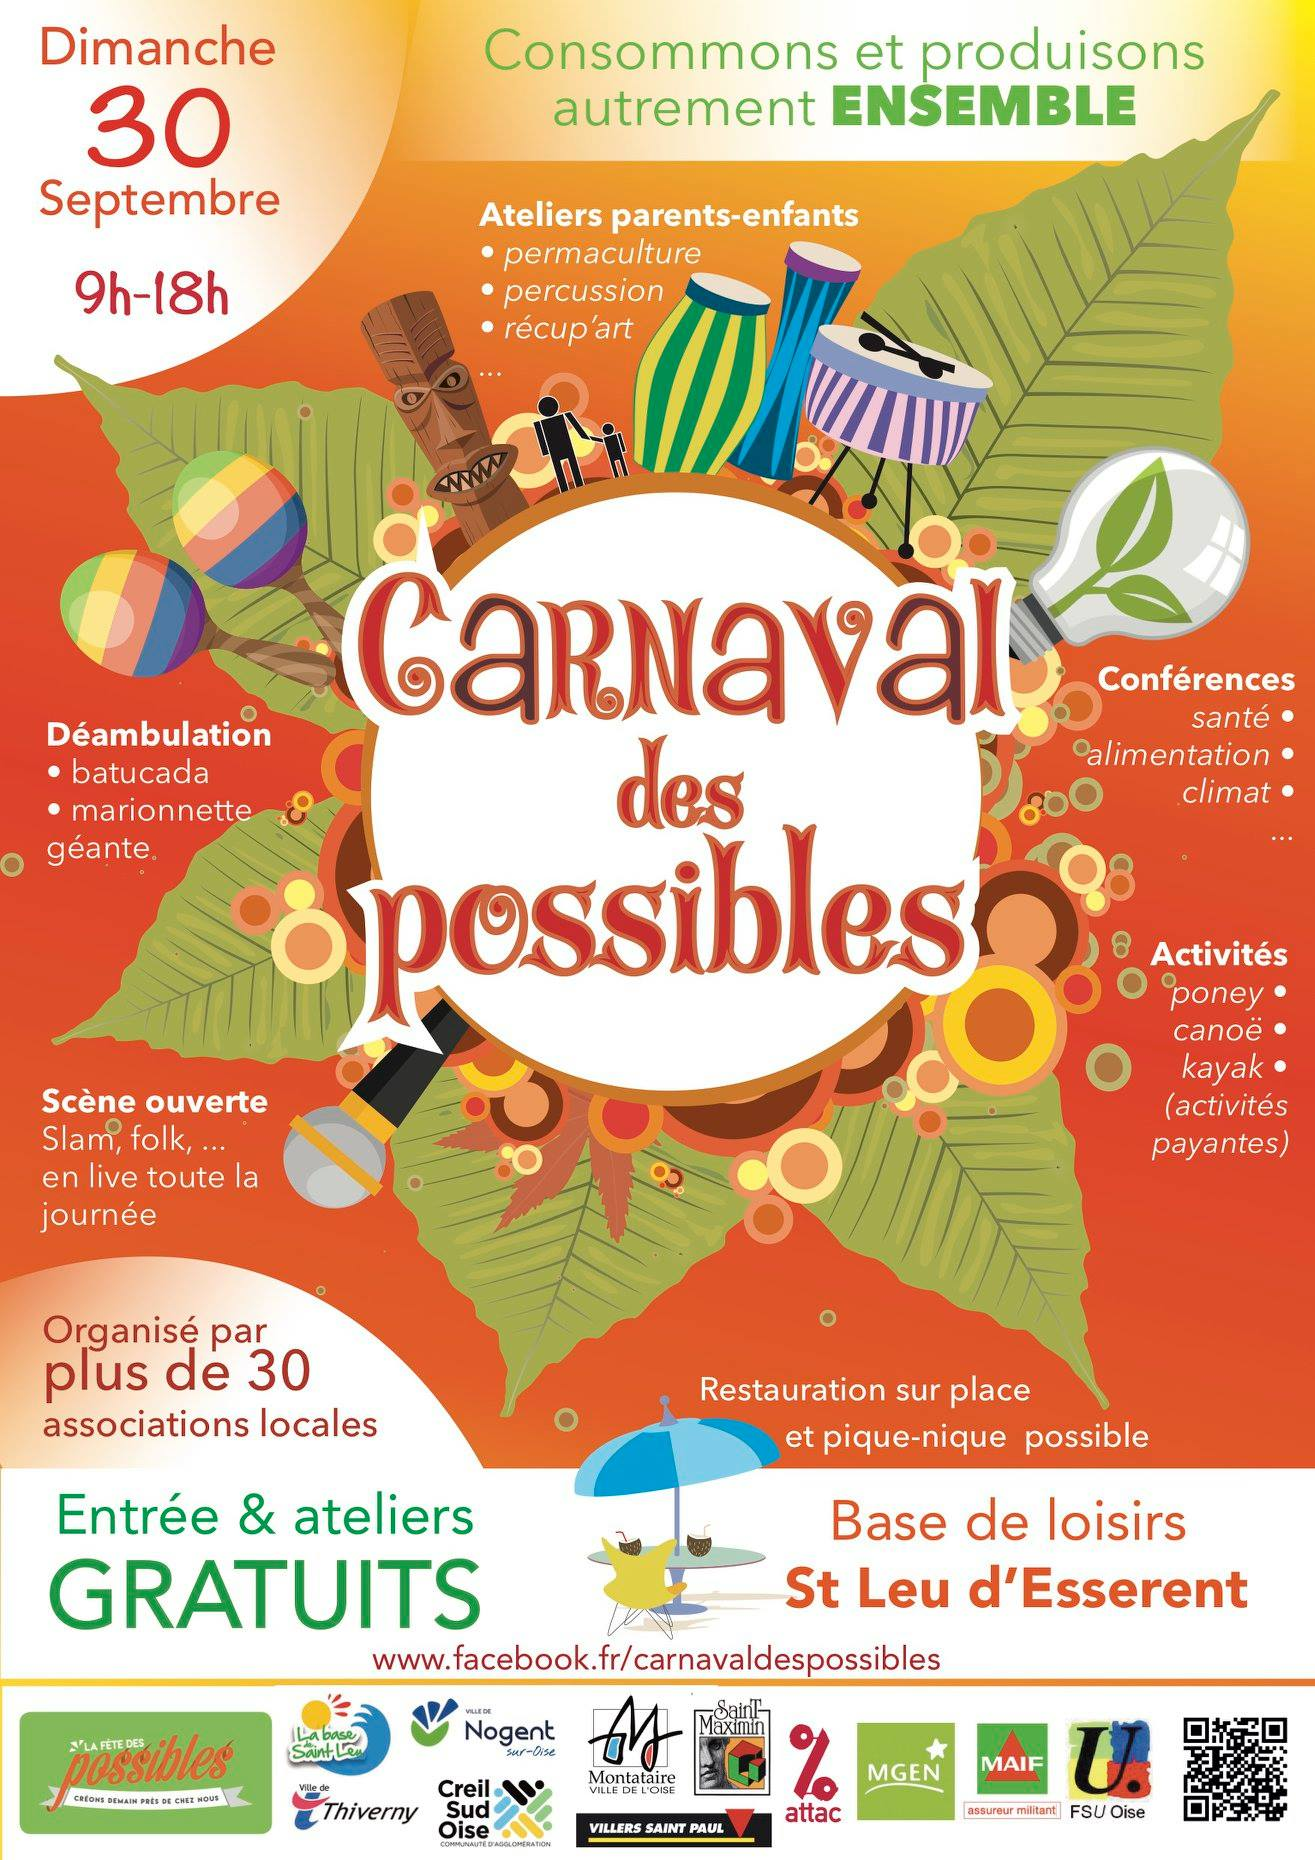 Le Carnaval des Possibles samedi 30 septembre à Saint-Leu-d'Esserent